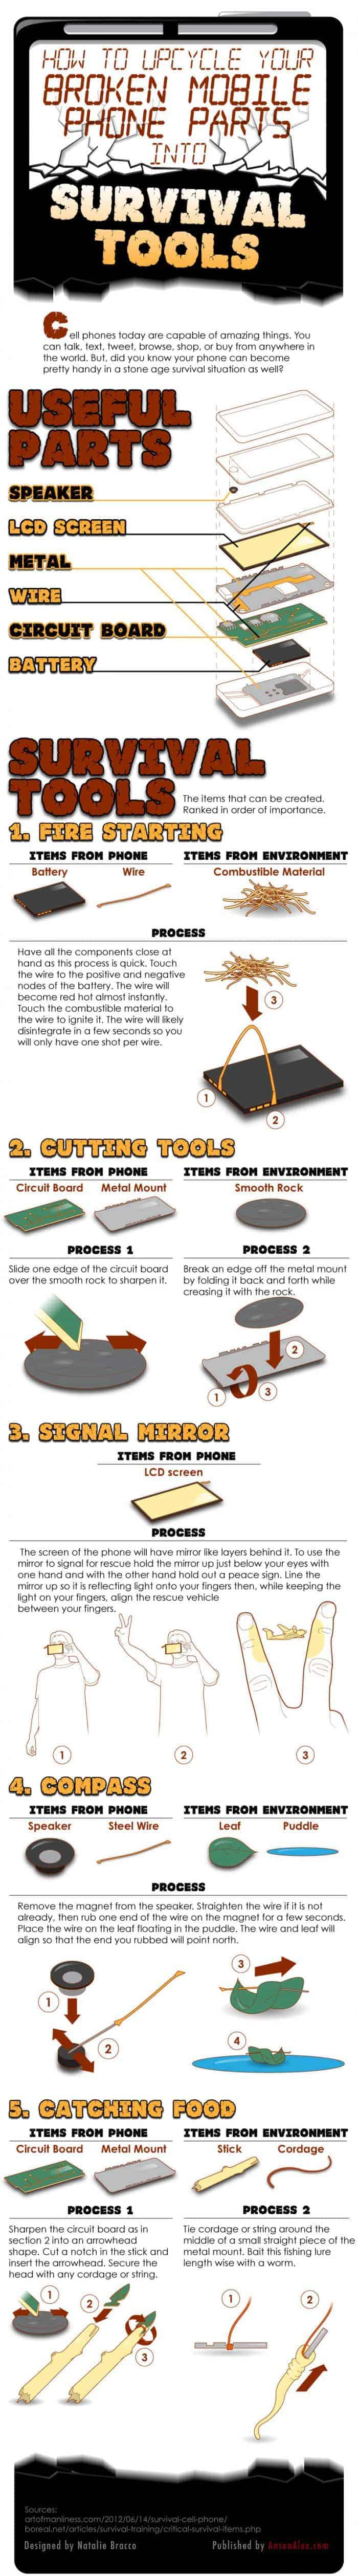 Turning Cell Phones Into Survival Tools Infographic